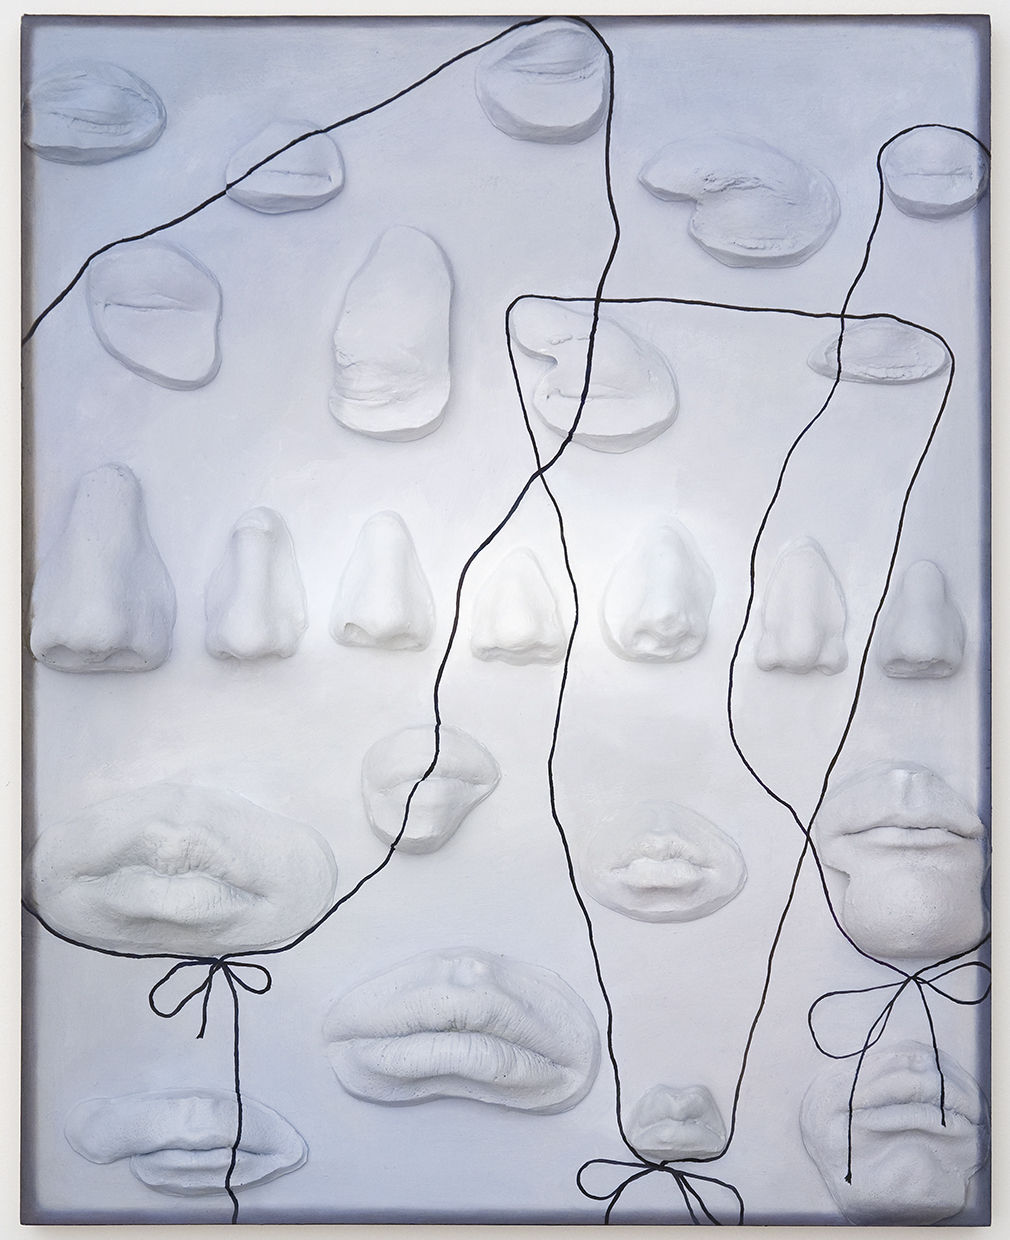 """Lucy Kim, Your Noice is My Nose 2, 2014, oil paint and plastic on wood panel, 20"""" x 16"""""""